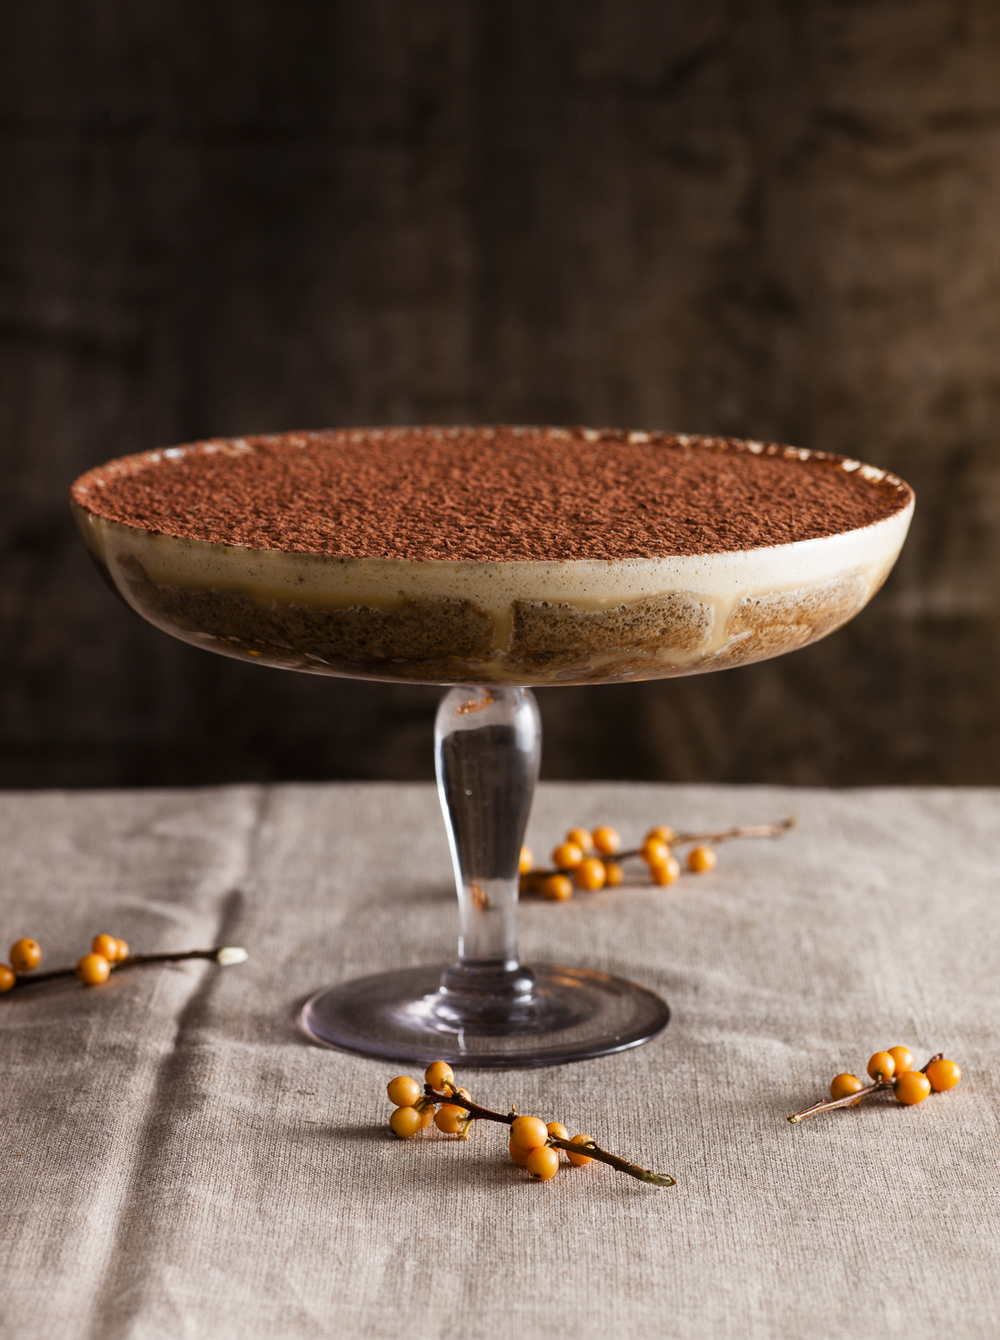 oliver_rowe_sunday_times_food_styling_Tiramisu-7.jpg